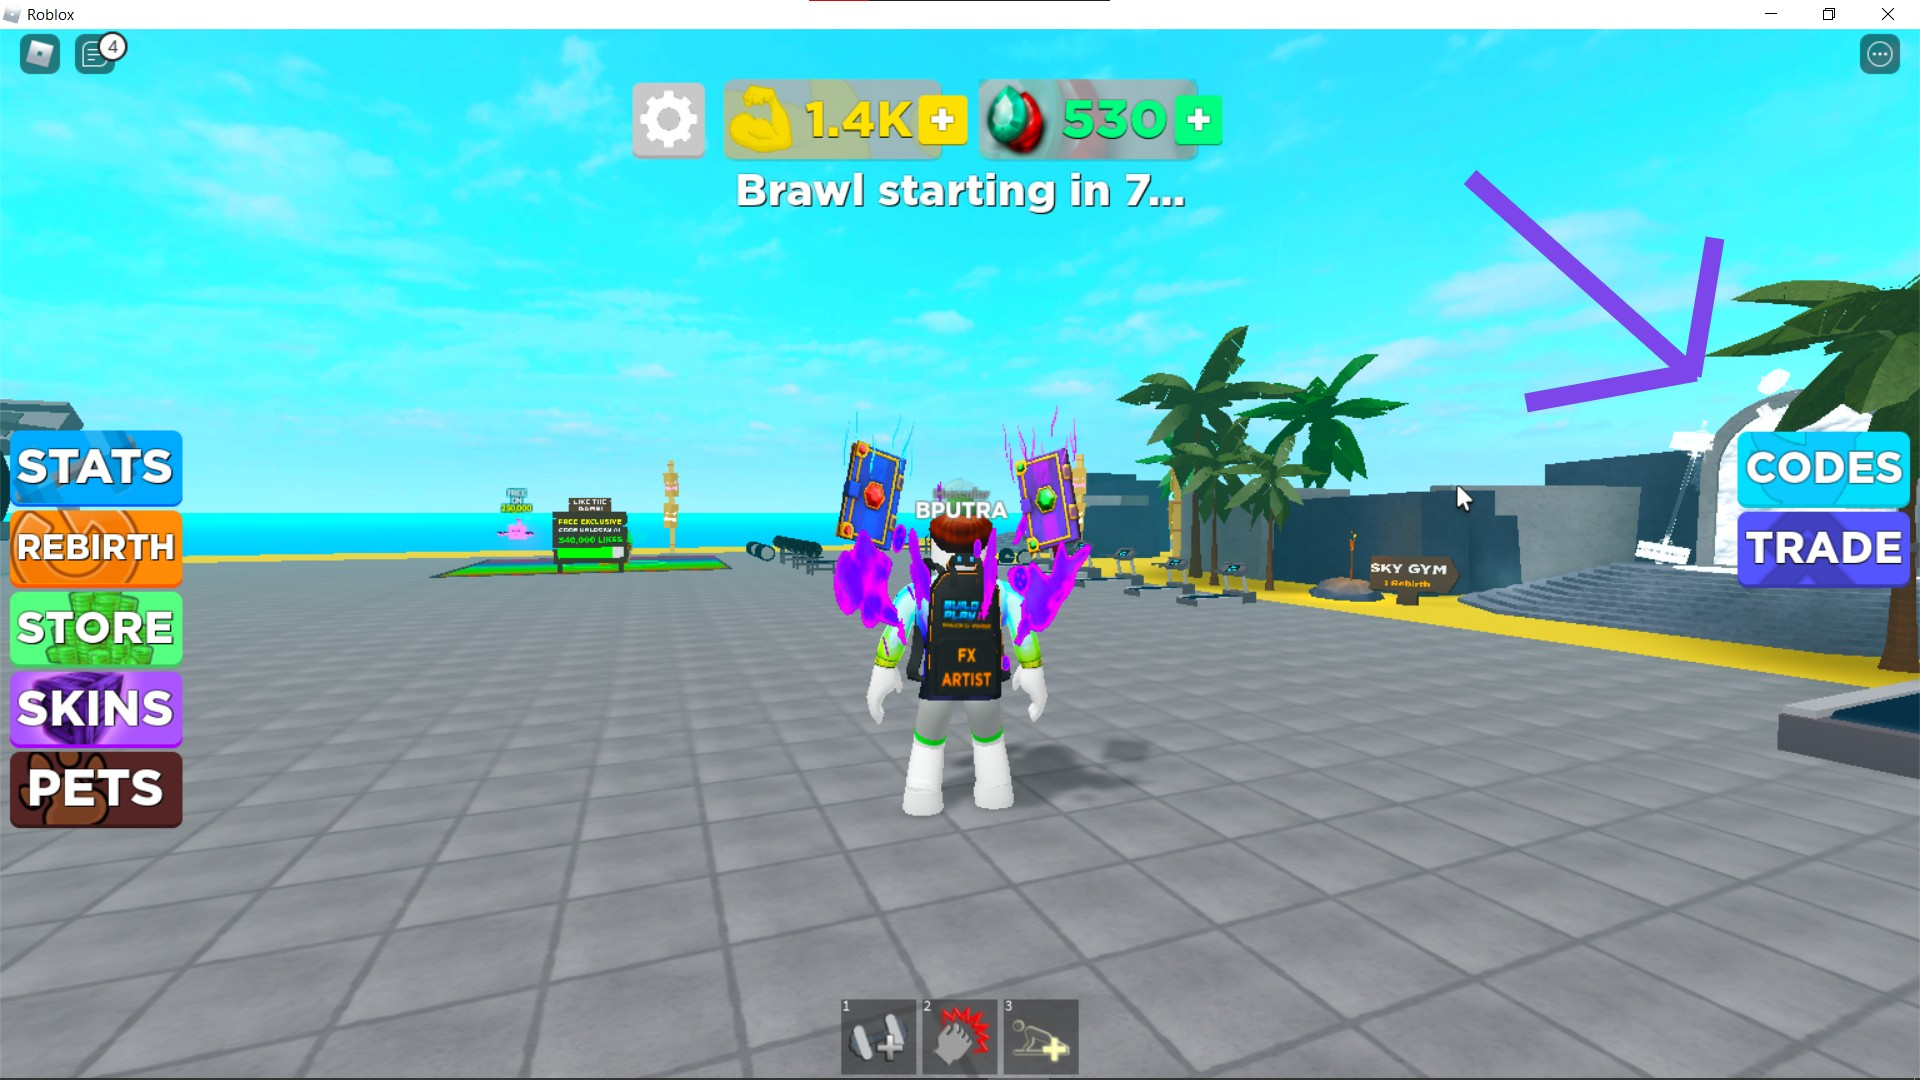 Exclusive Codes For Bad Business Roblox and Weight Lifting Simulator Roblox - September 2021 1